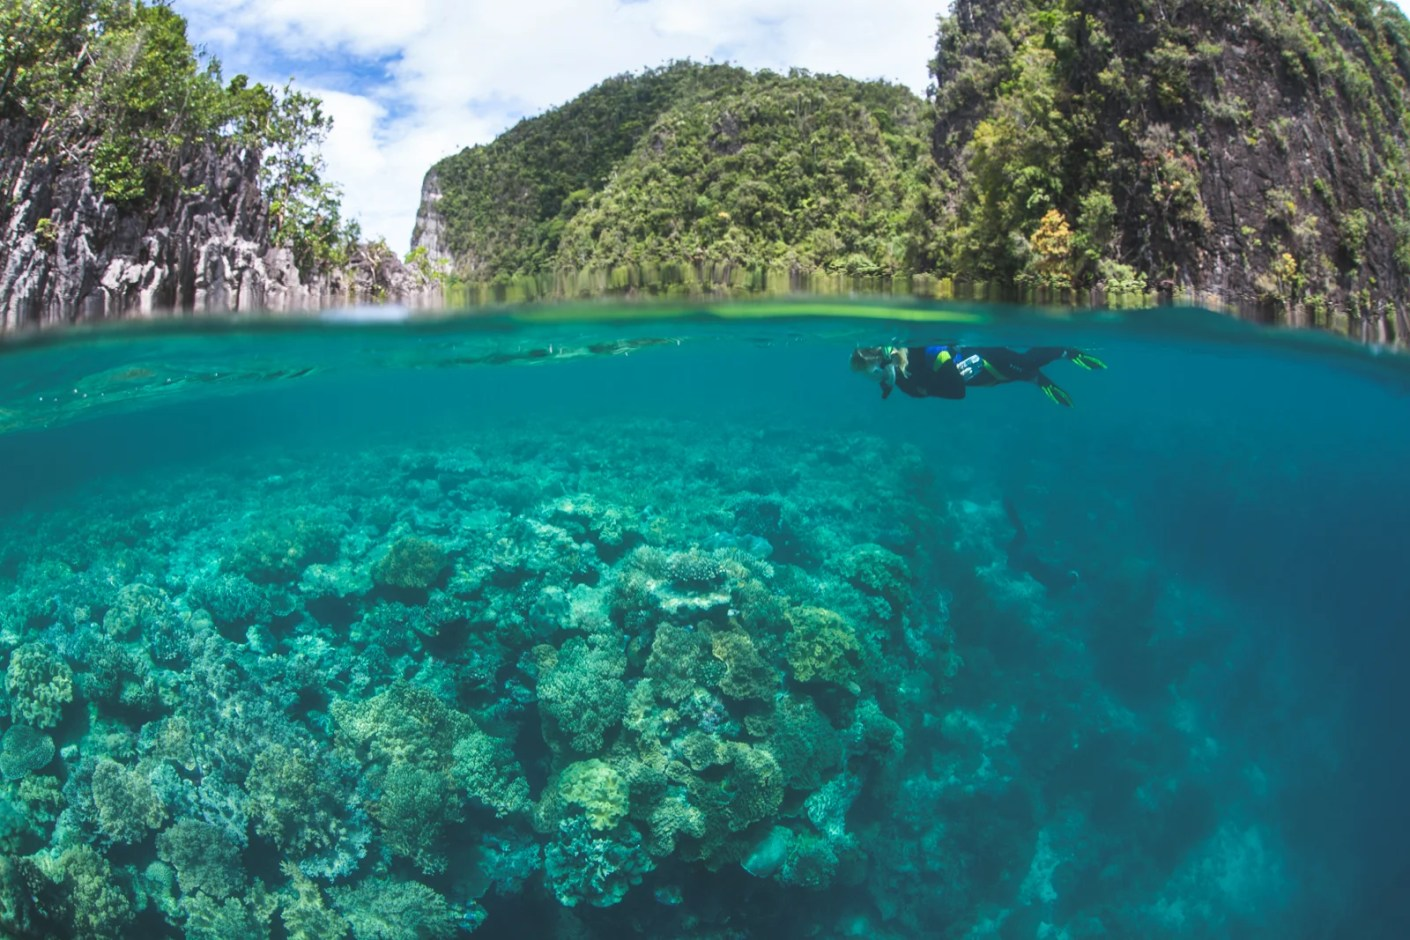 The reefs in Raja Ampat, Indonesia are lush and vastly protected. (Photo via Shutterstock)